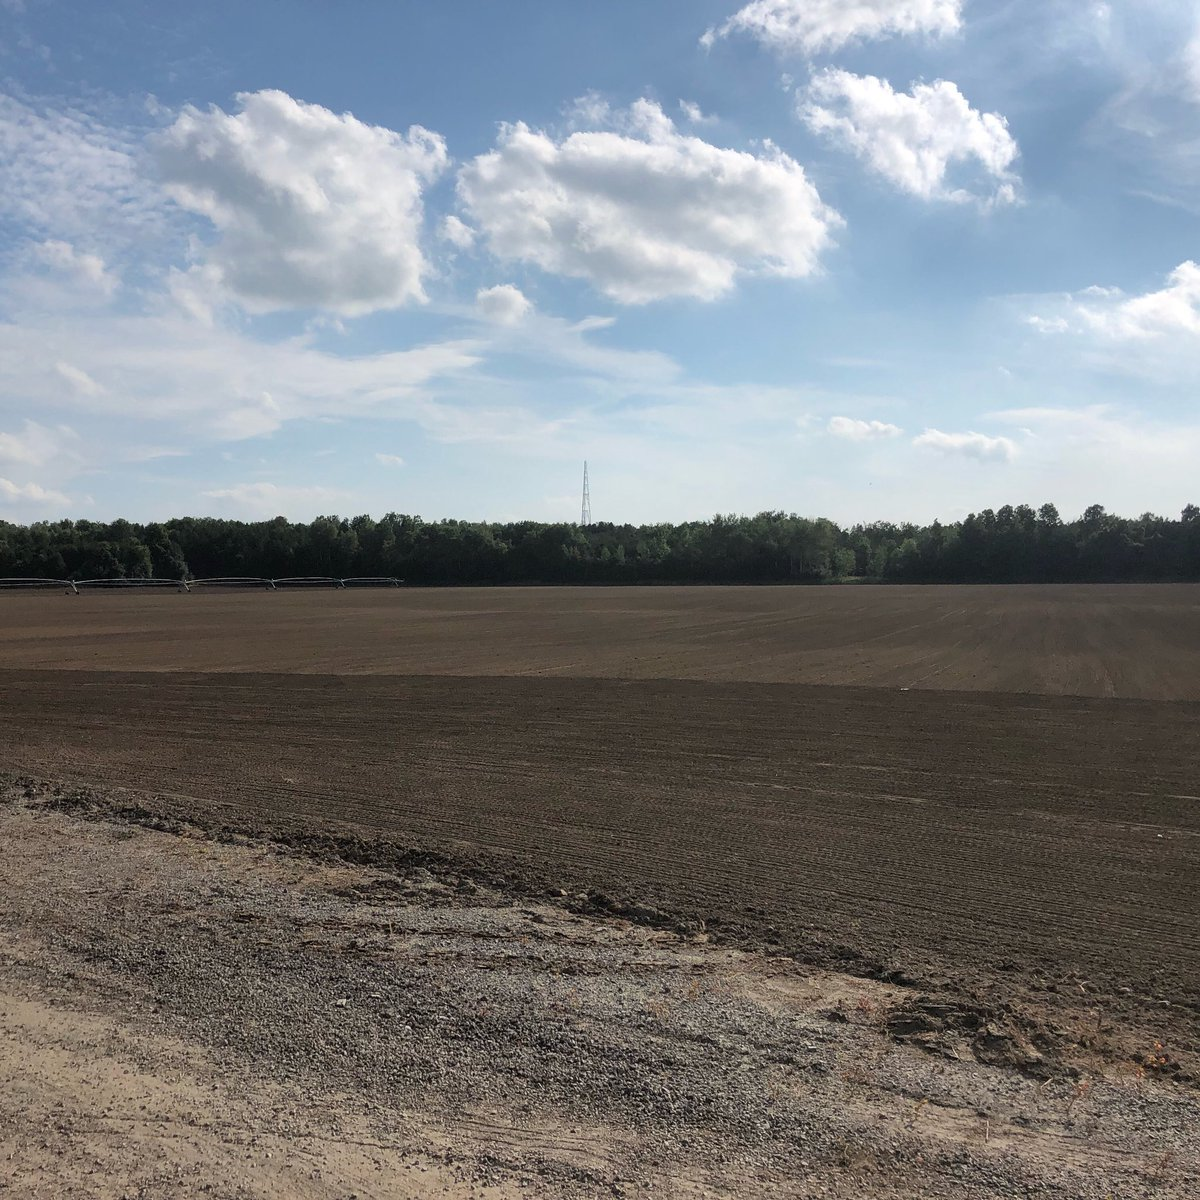 First 30 acres of seed in the ground.  It may be a little early but this field is under pivot and will be up and growing in no time!  #thinkgreencallfairgreen #sodfarming #seedingtime #plant19 https://t.co/zrdTVRkgyZ